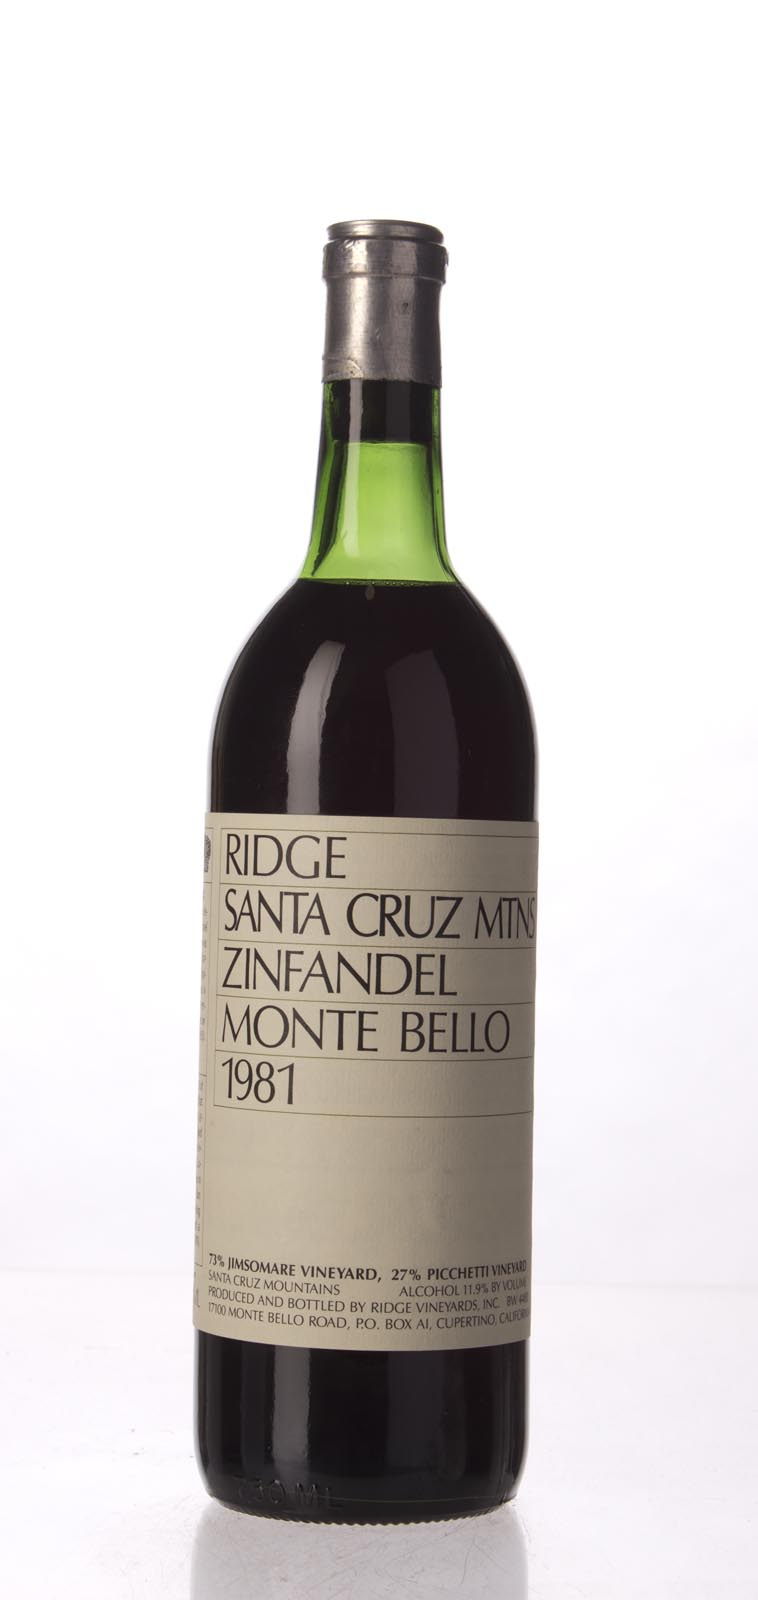 Ridge Zinfandel Monte Bello 1981, 750mL () from The BPW - Merchants of rare and fine wines.